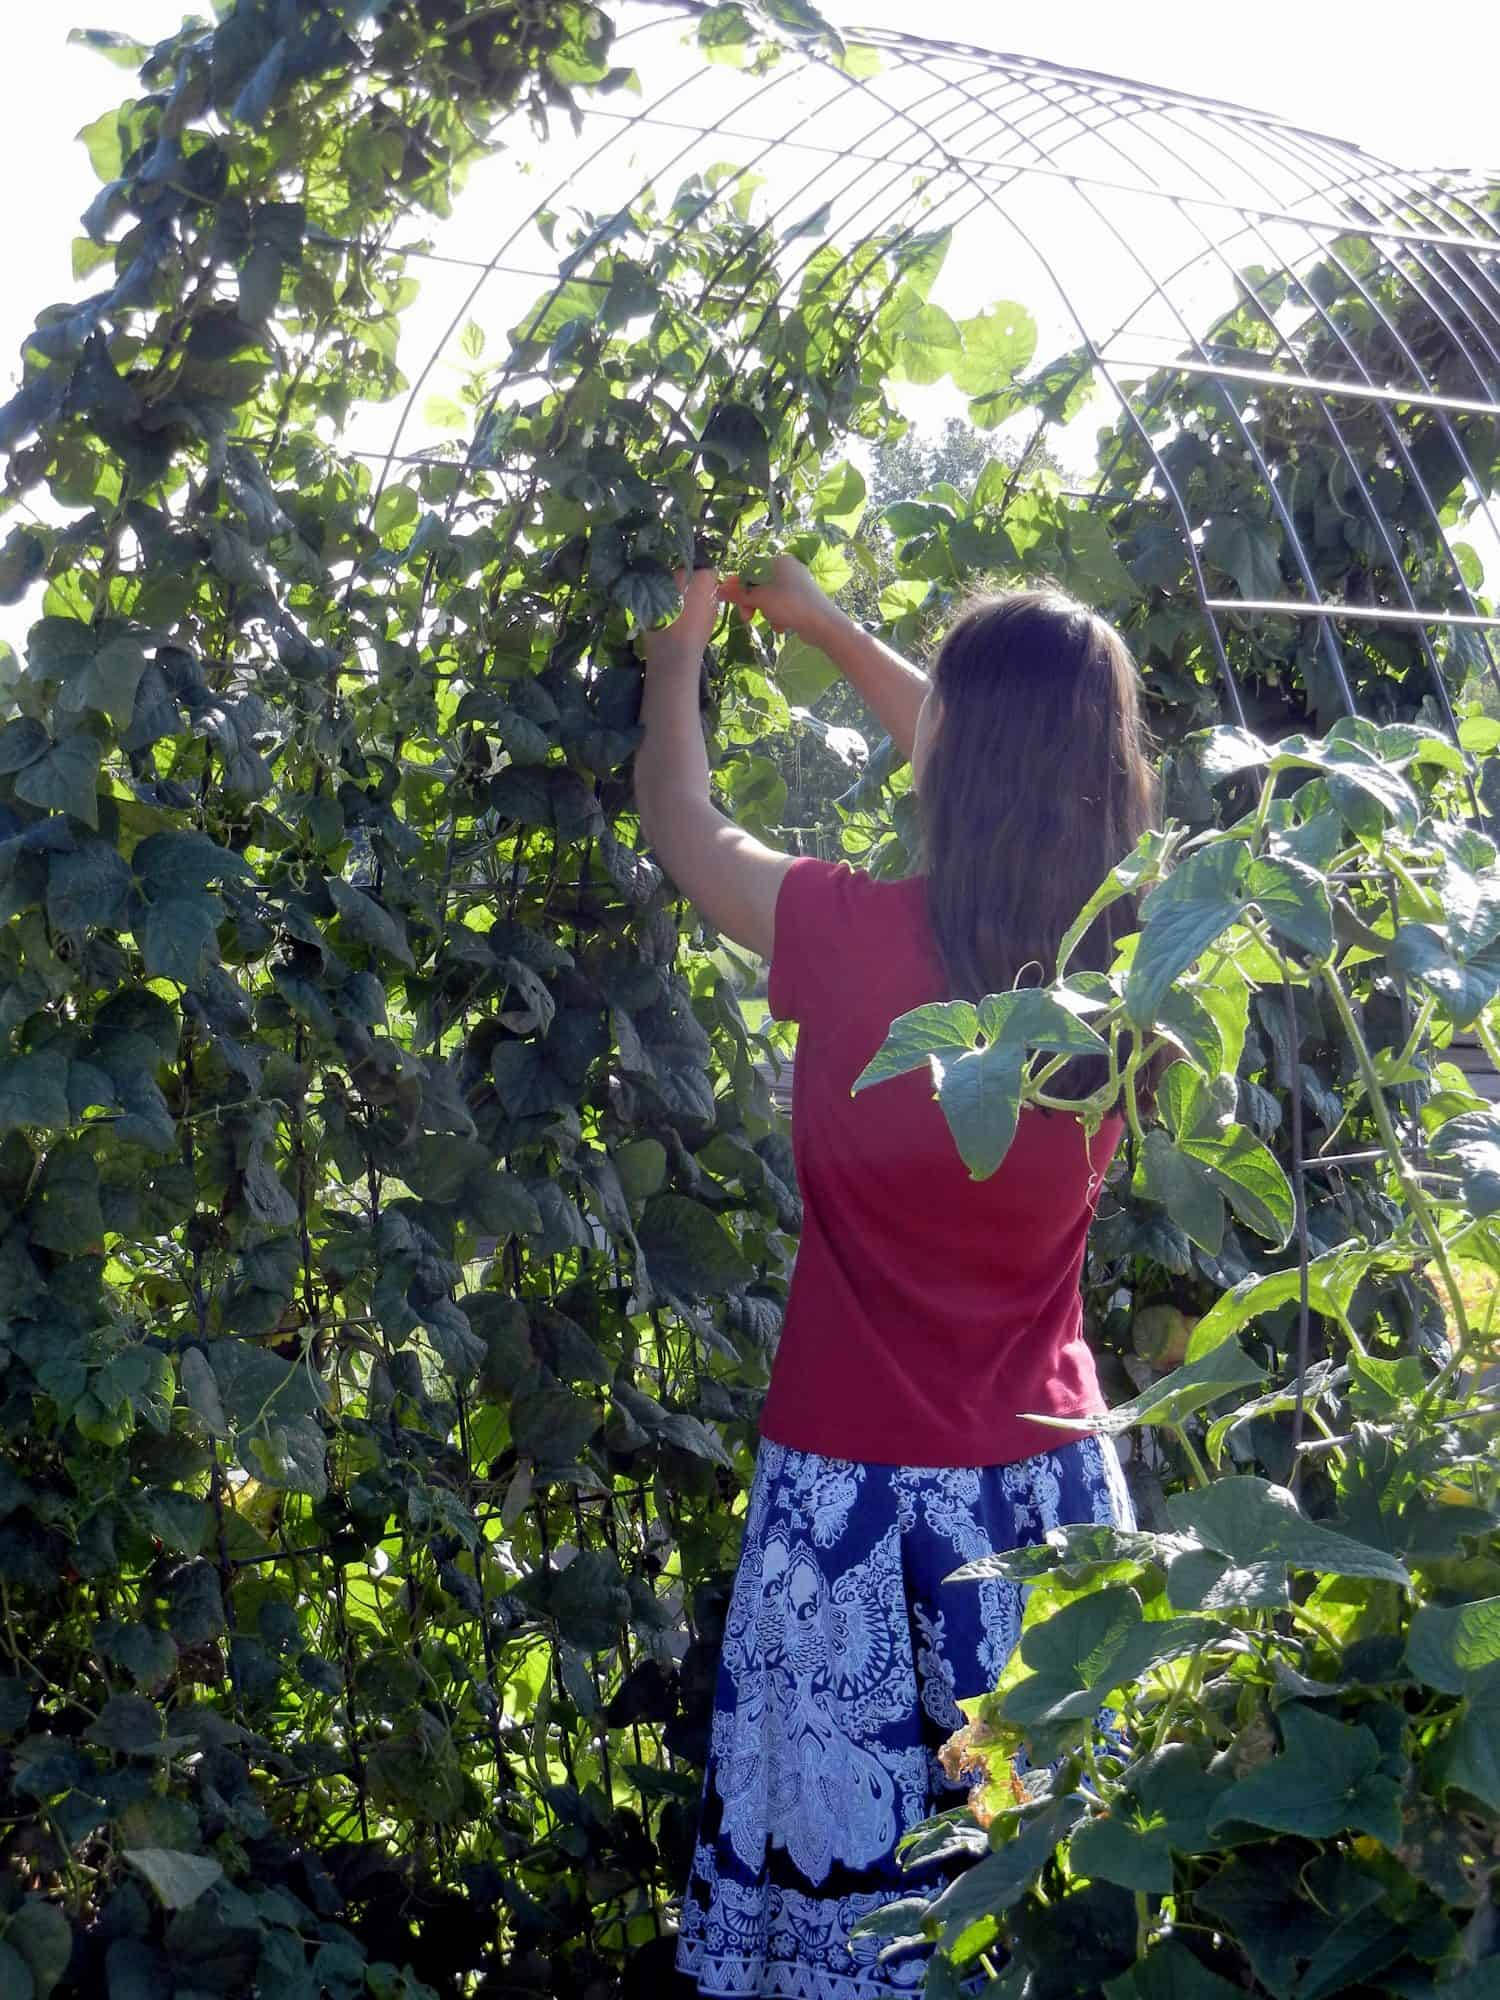 Building A Strong Wind & Weather-Resistant Trellis. Our daughter picking green beans in the kitchen garden